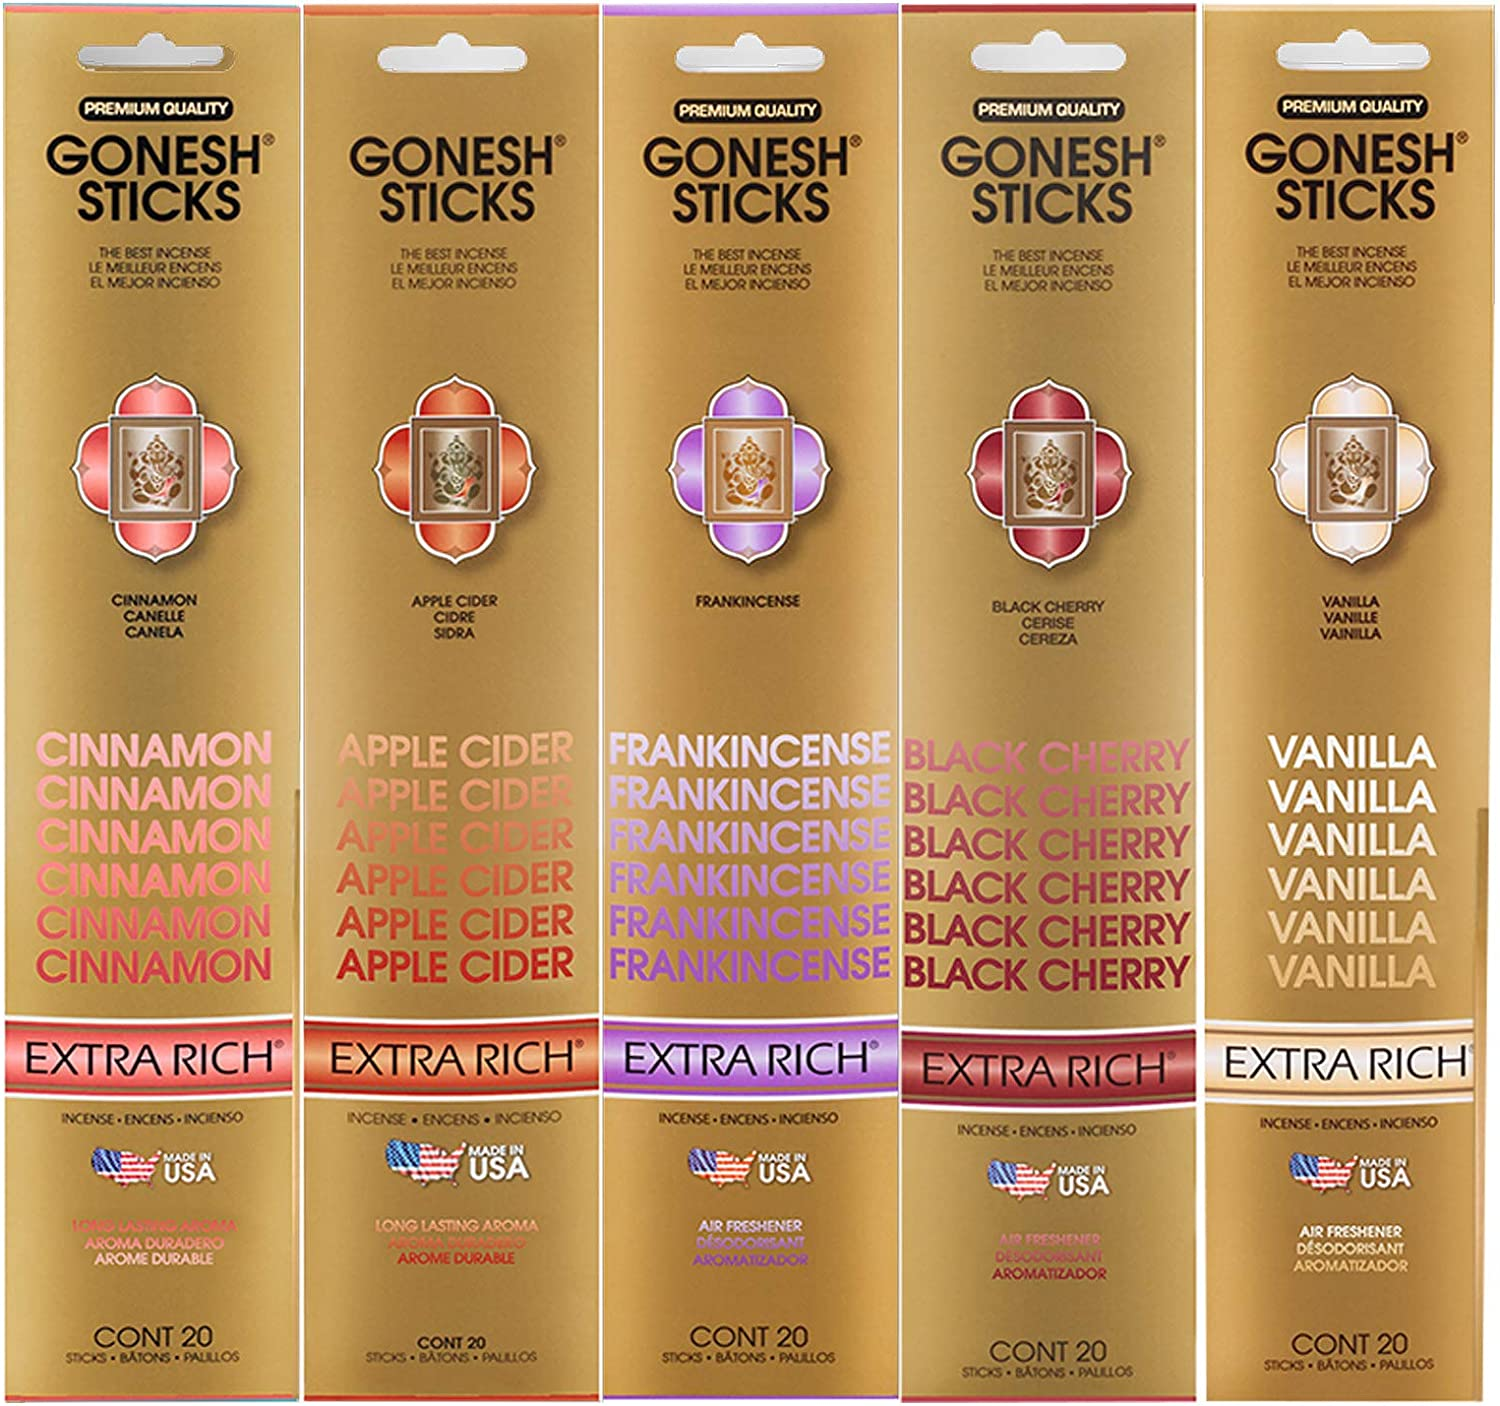 Gonesh Incense Extra Rich Collection Variety Pack, 5 Packs, 20 Sticks Each (Cinnamon, Apple Cider, Frankincense, Black Cherry, Vanilla)